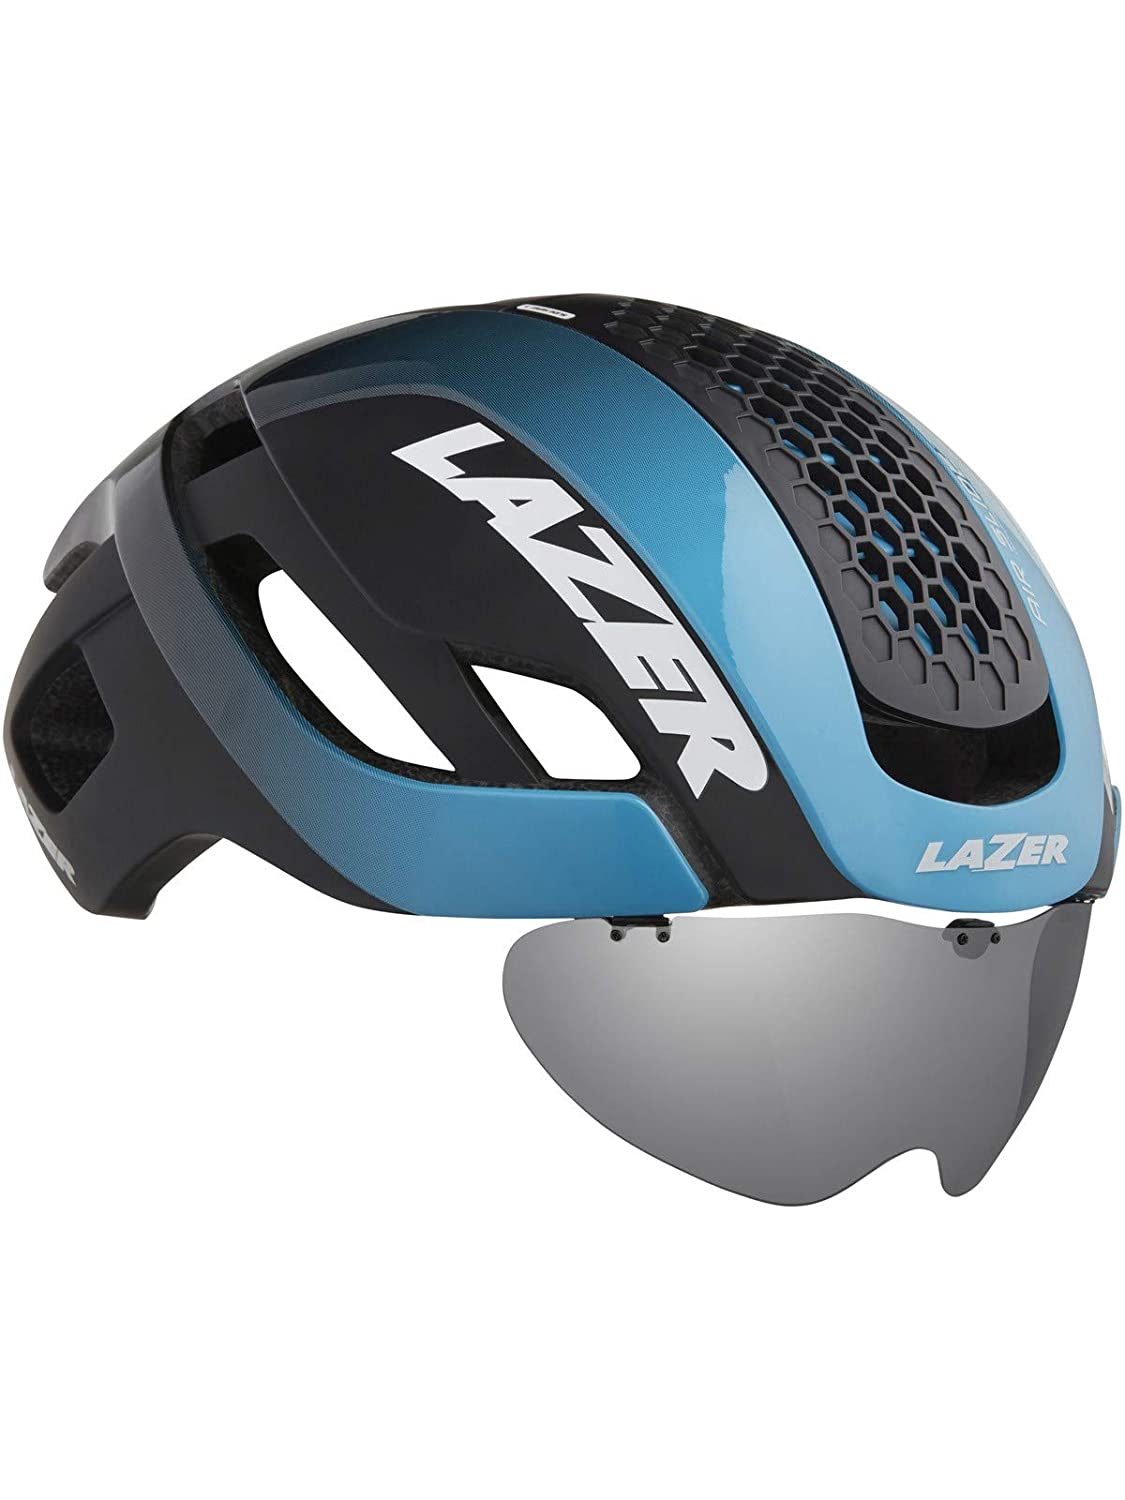 Small Lazer blueeeBlack Bullet 2.0 Cycling Helmet